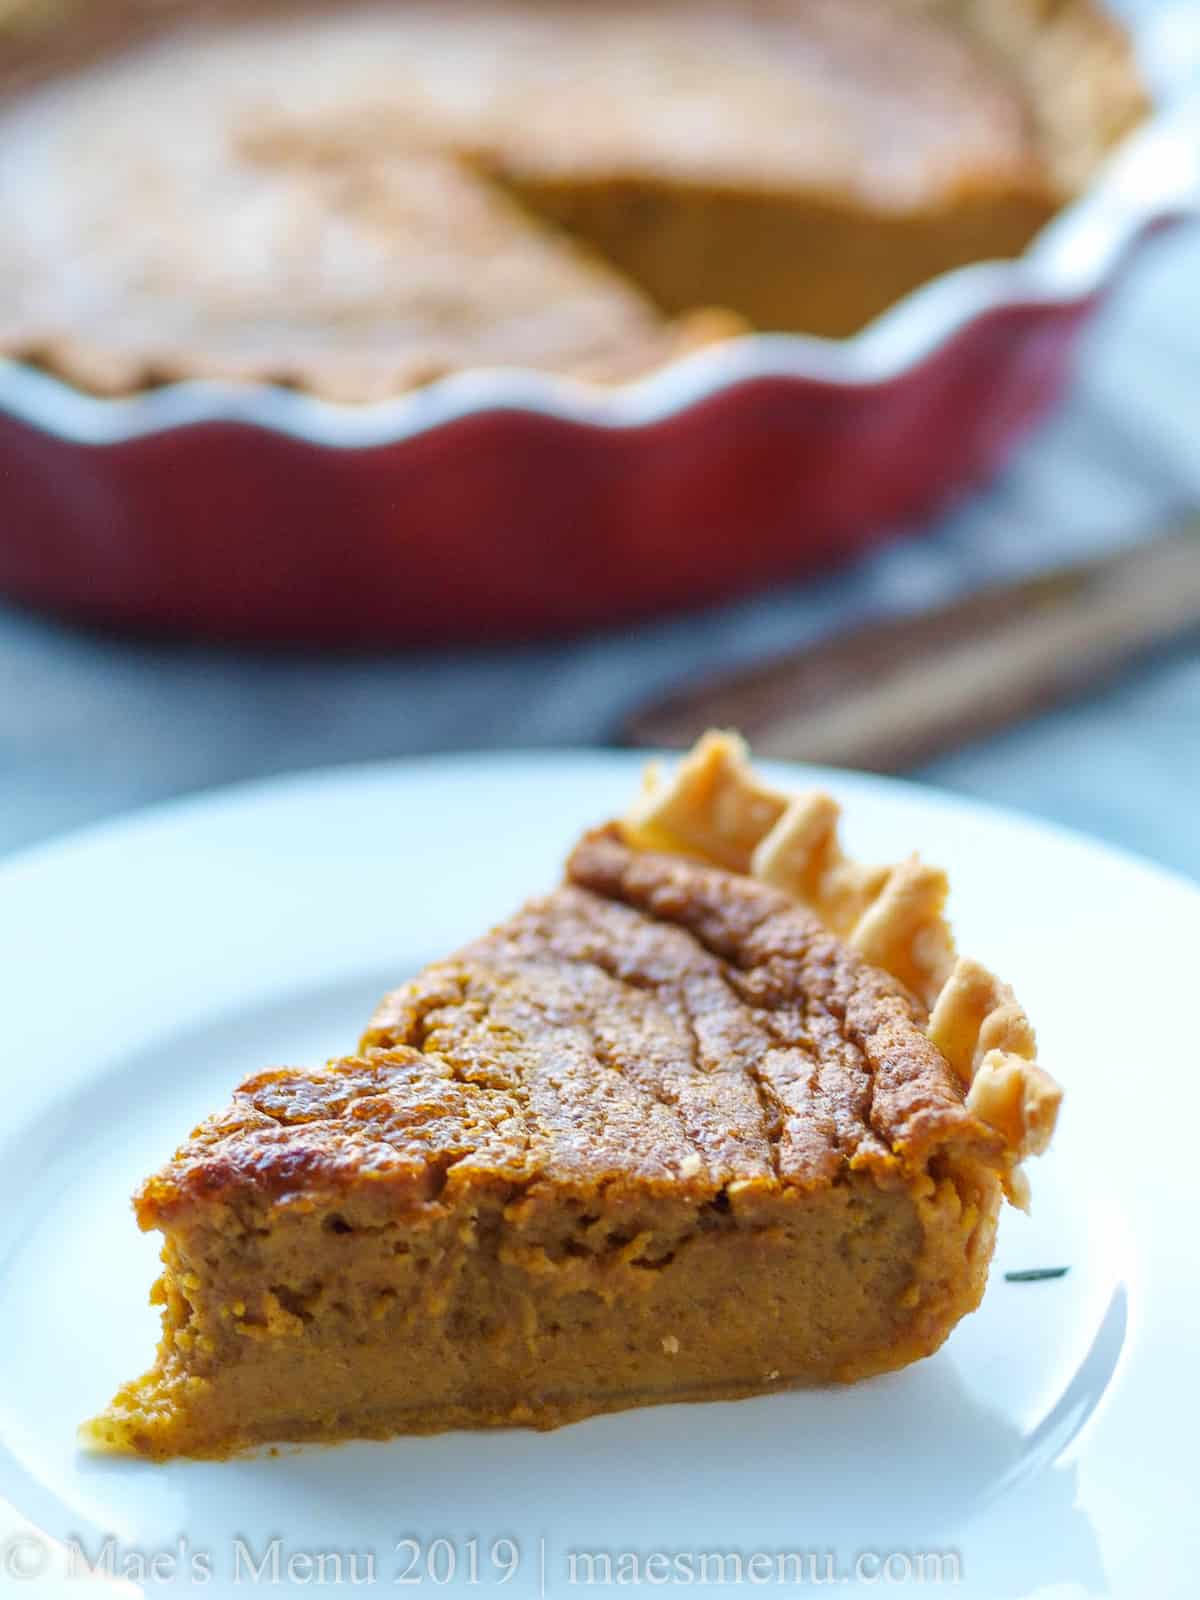 A piece of pumpkin pie without evaporated milk in front of a pie pan of pumpkin pie